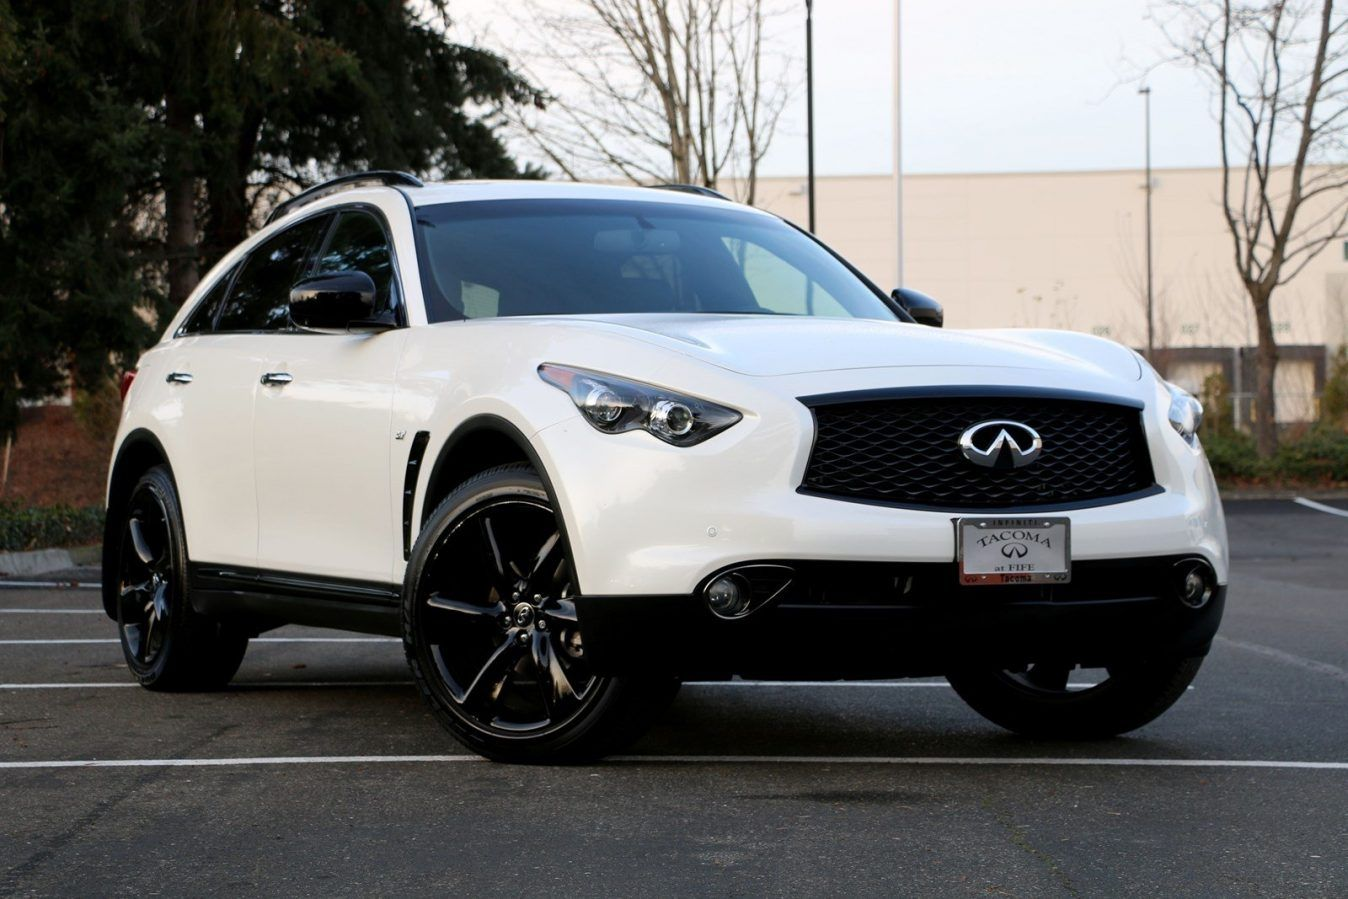 2020 Infiniti Qx70 Review Styling Release Date Cost Engine Photos